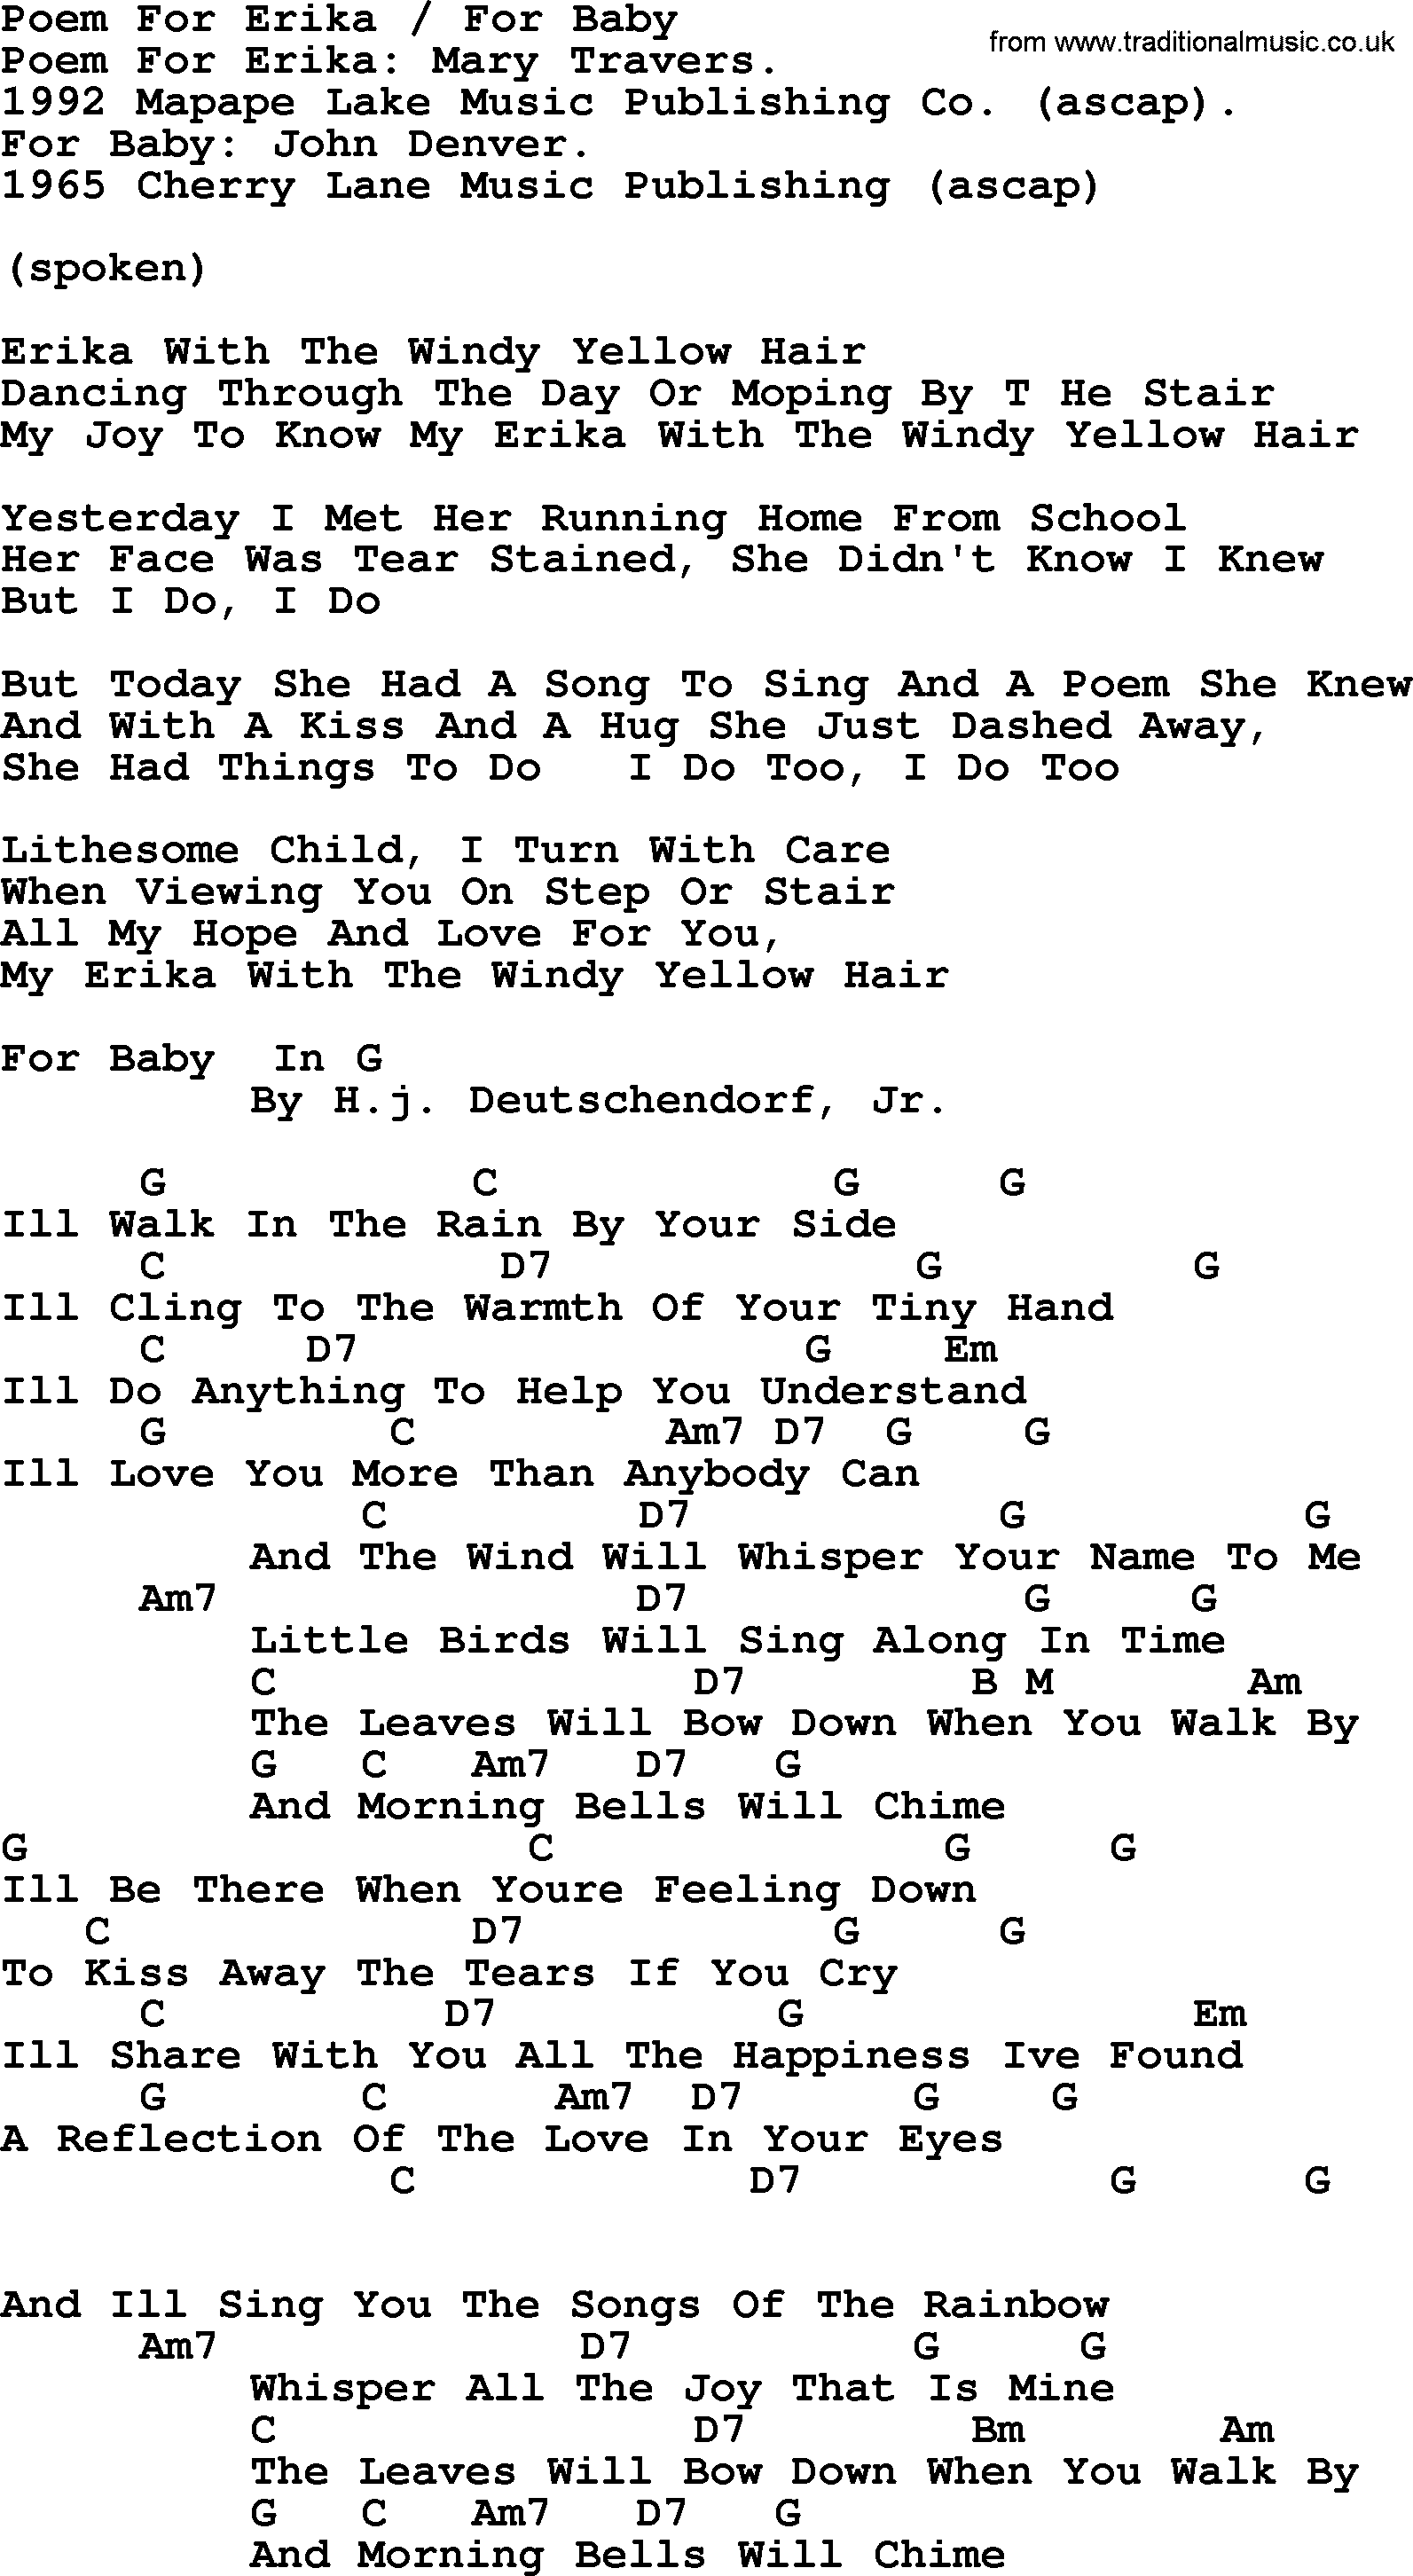 Peter paul and mary song poem for erika and for baby lyrics and peter paul and mary song poem for erika and for baby lyrics and chords hexwebz Choice Image